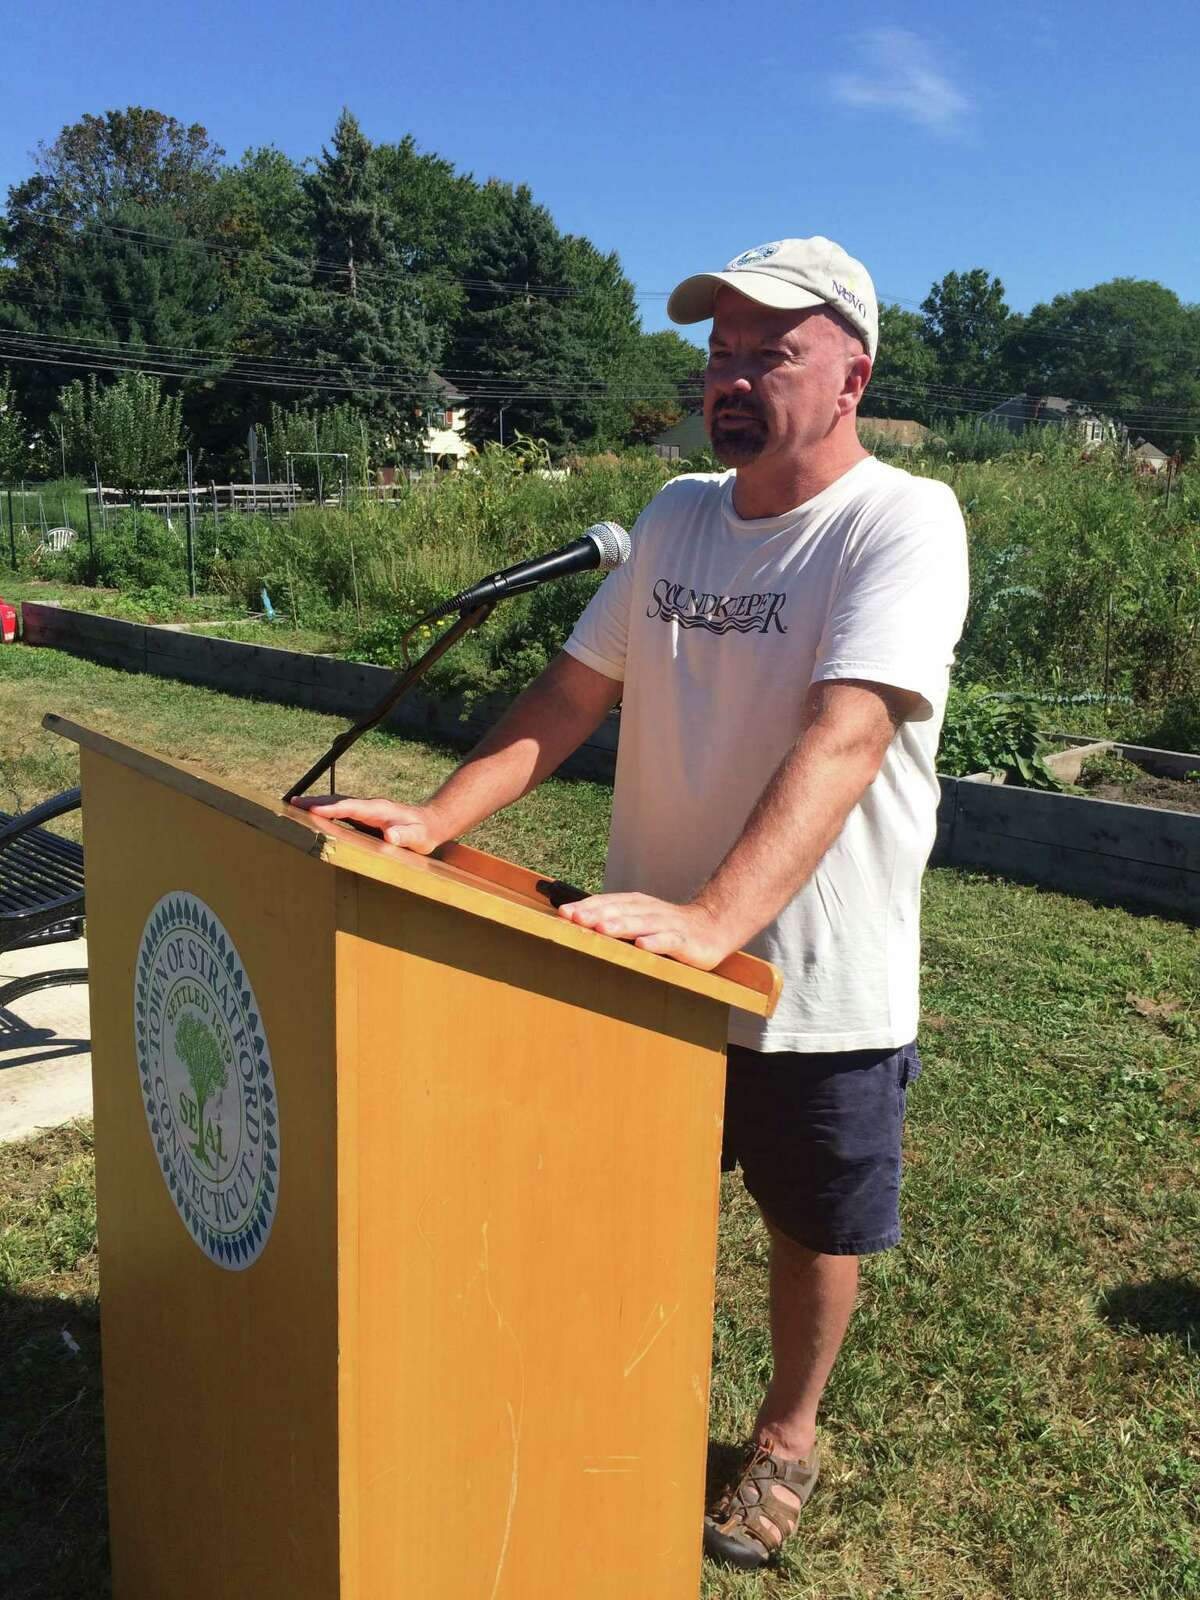 The Stratford community garden was renamed on Wednesday as the Terry Backer Community Farm of Stratford. Speaking at the ceremony was state Rep. Joe Gresko, D-Stratford, who was elected to Backer's seat. Terry Backer died of brain cancer in December, 2015.